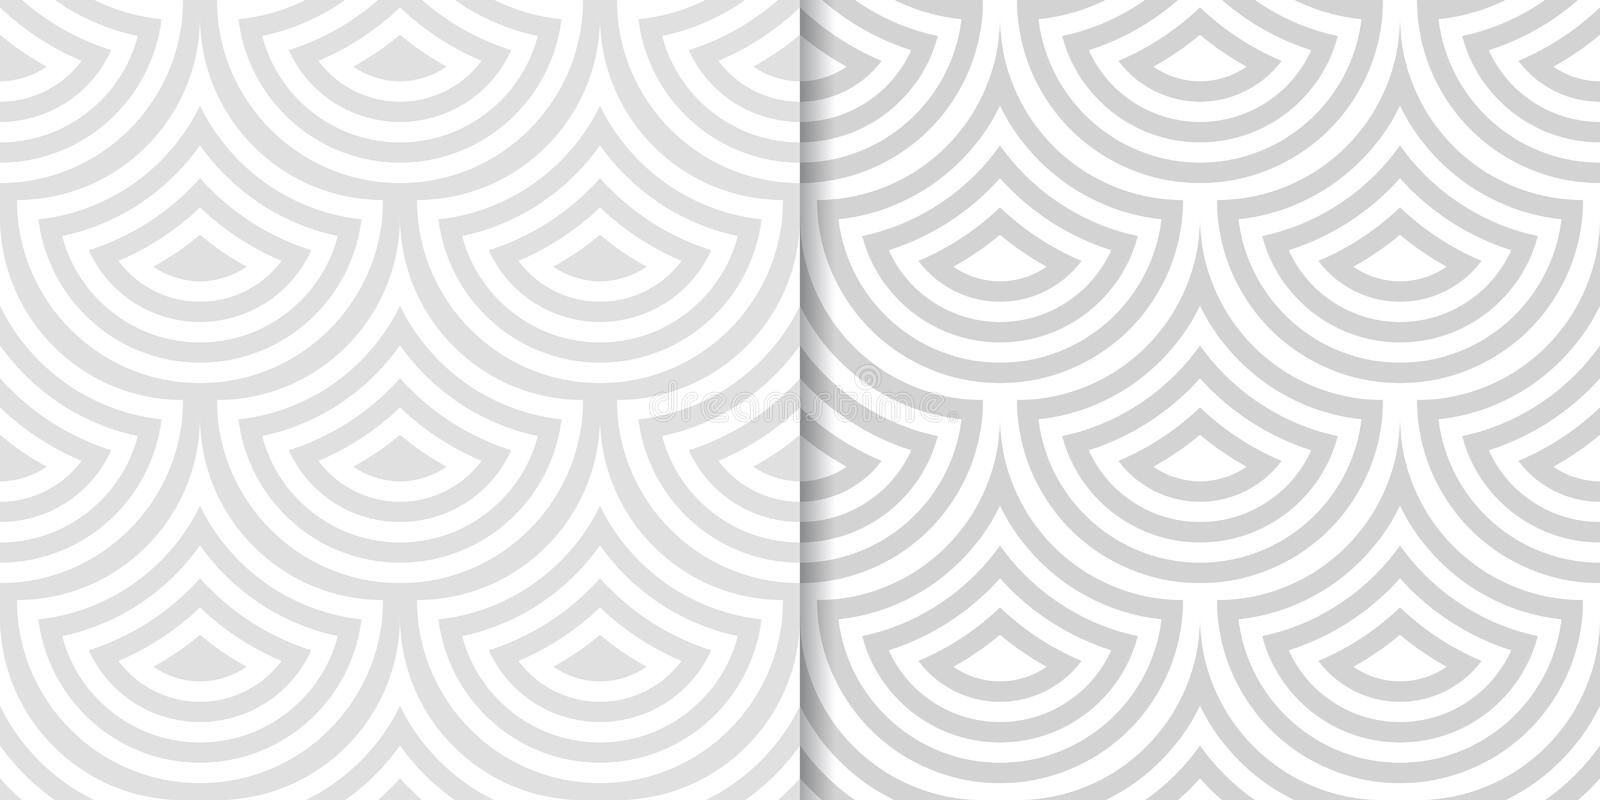 Abstract geometric background. Drop shape. Gray seamless patterns stock illustration